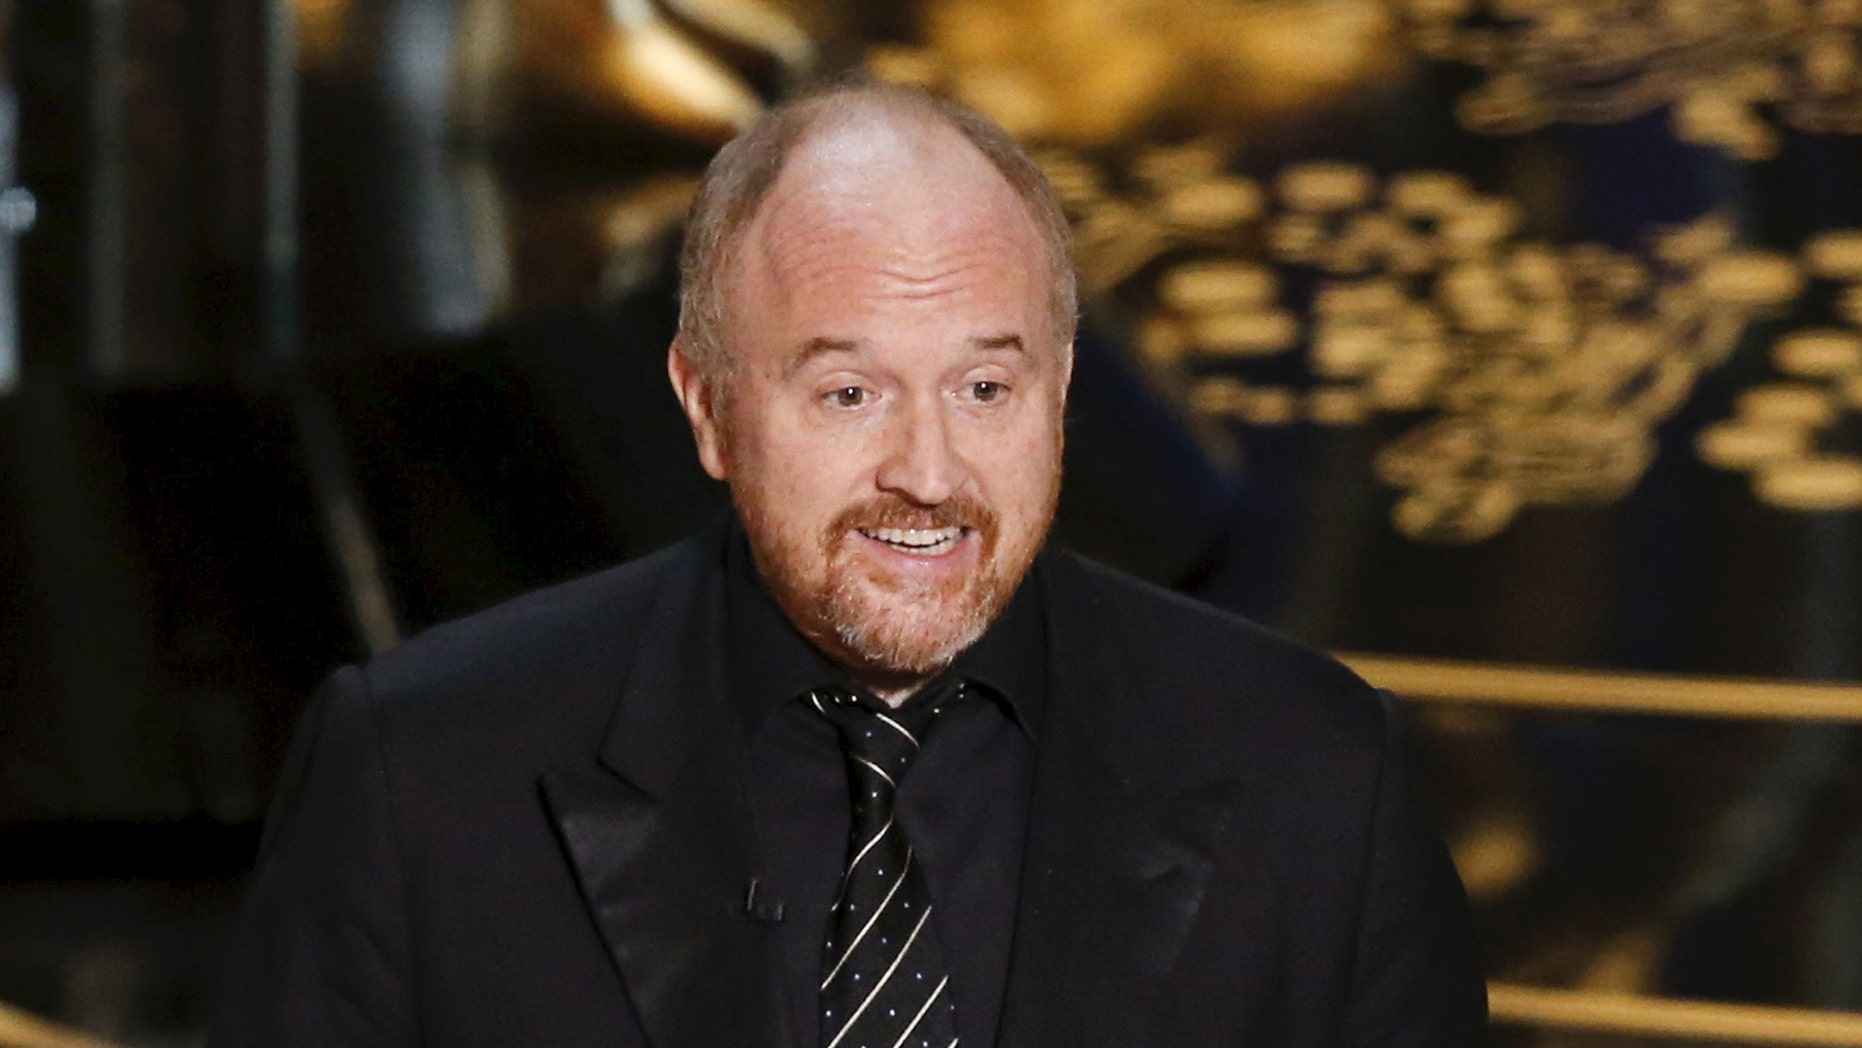 Presenter Louis C.K. introduces the nominees for Best Documentary Short Film at the 88th Academy Awards in Hollywood, California February 28, 2016. REUTERS/Mario Anzuoni - RTS8GQY